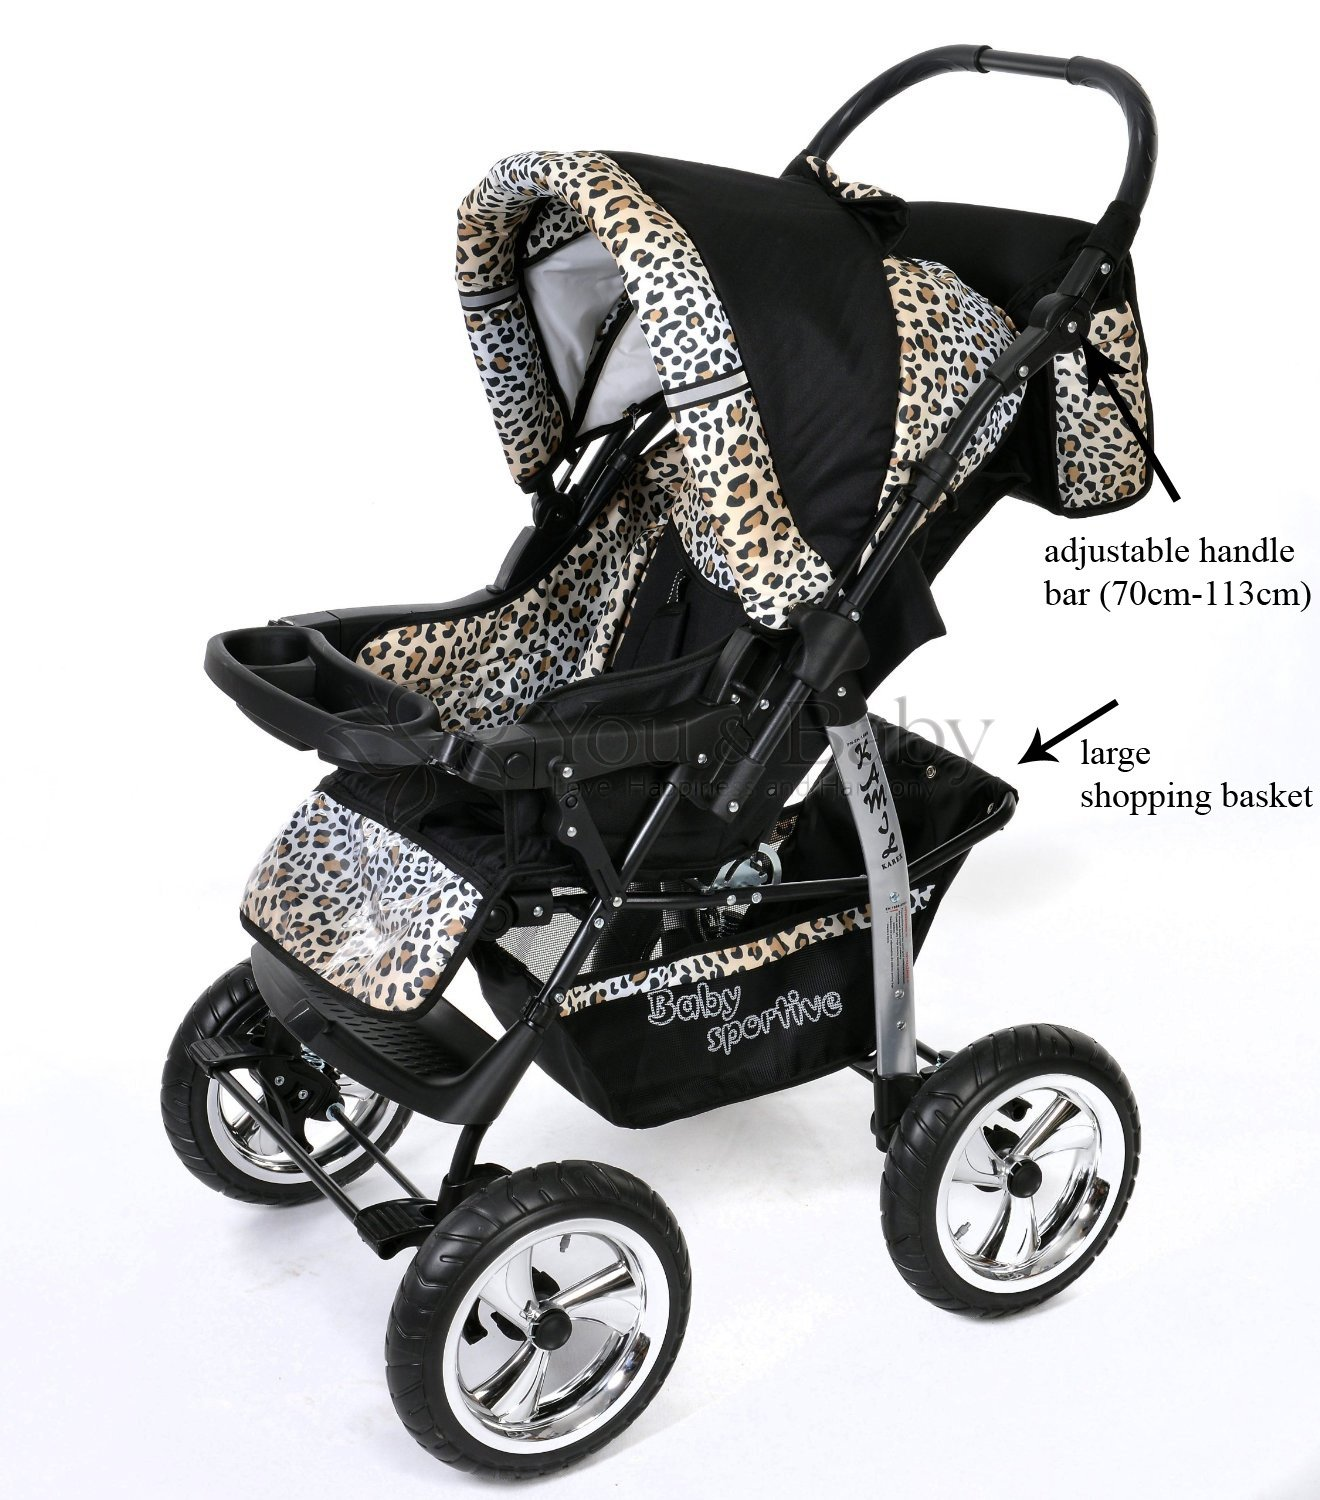 3 In 1 Travel System With Baby Pram Car Seat Pushchair Accessories Black Leopard Amazoncouk